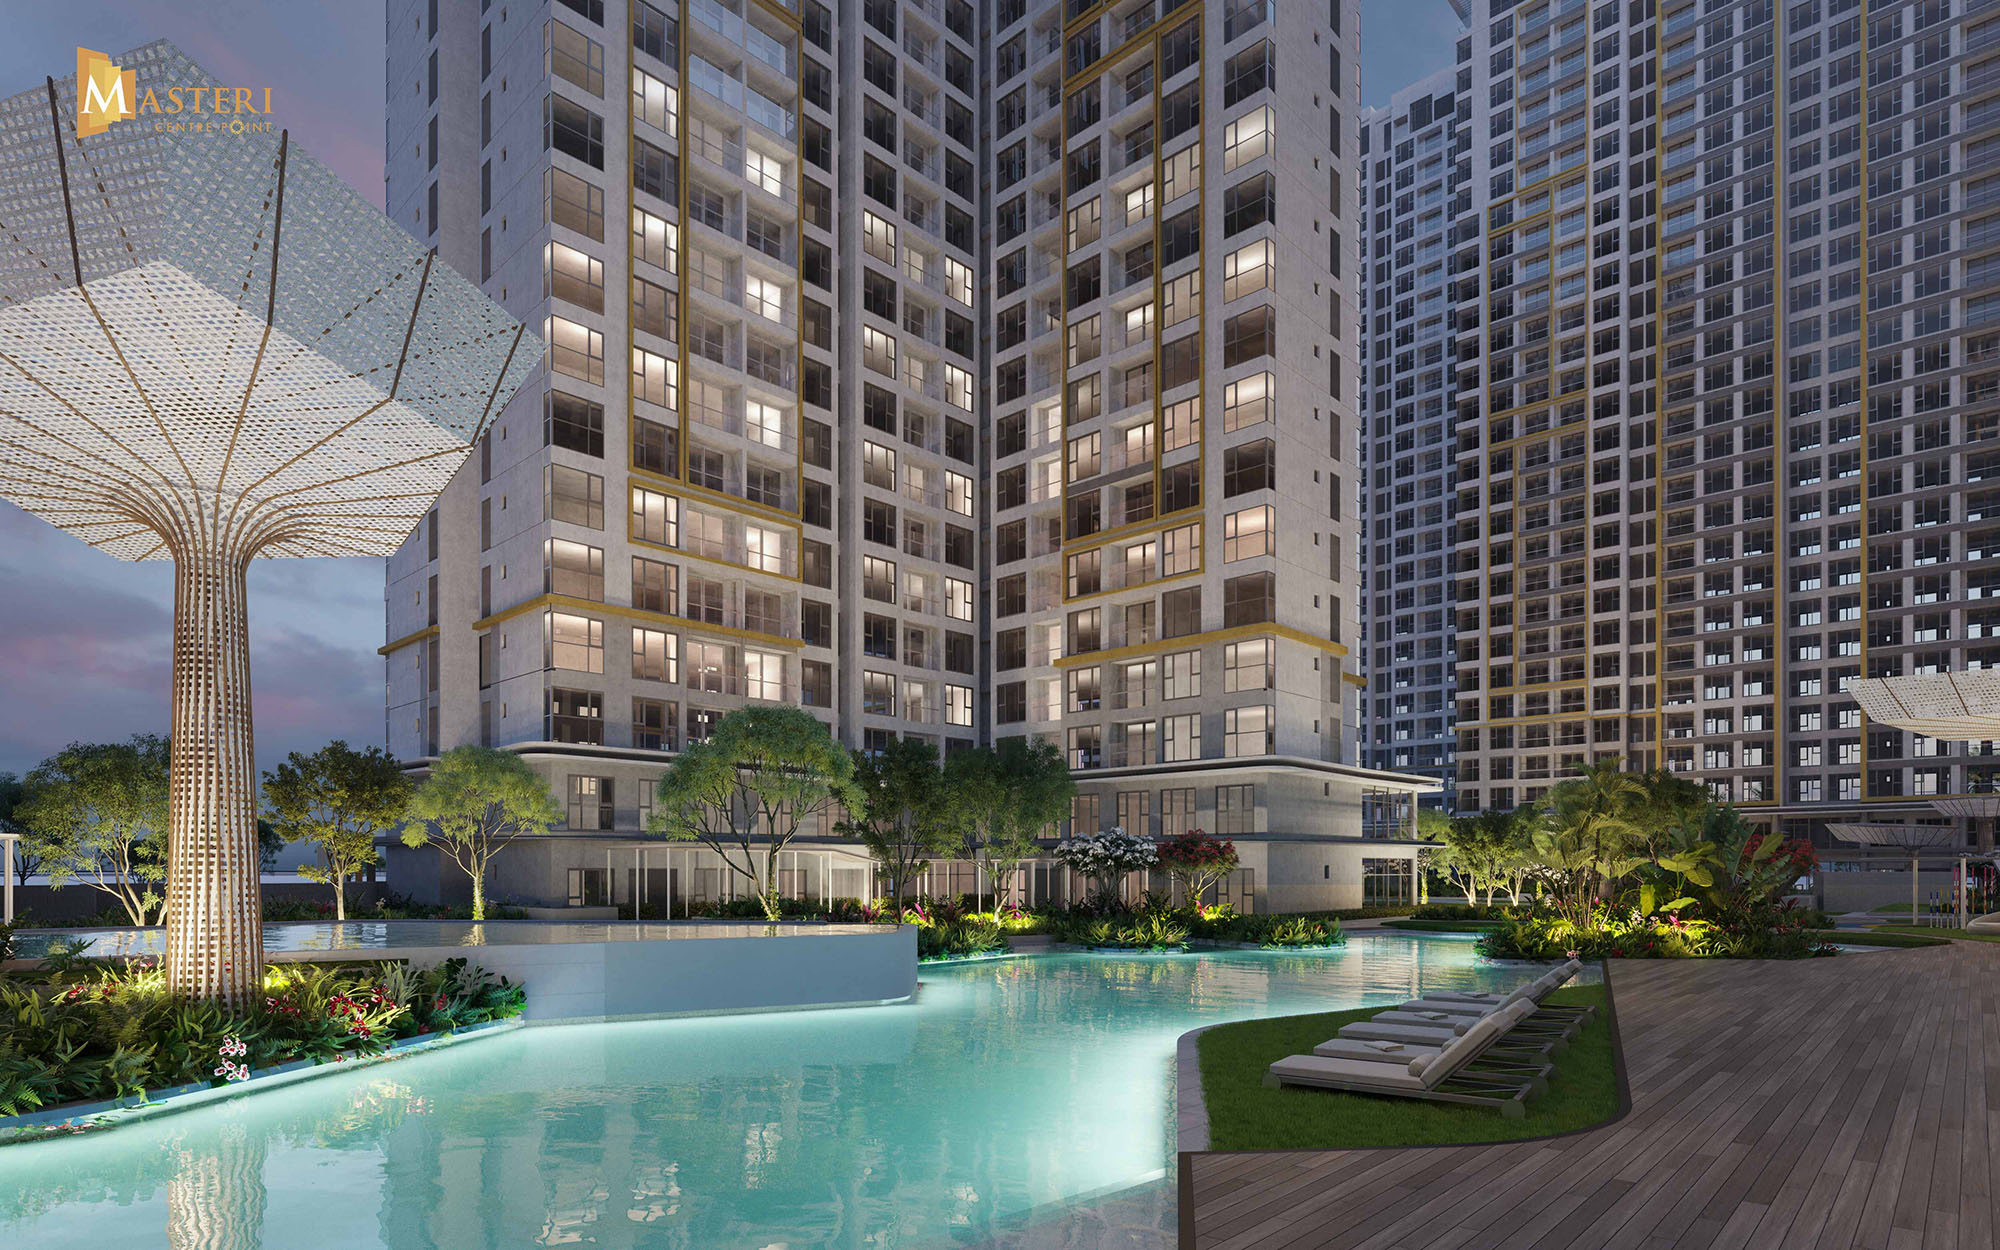 Masterise Homes applies world-class standards to new project, Masteri Centre Point